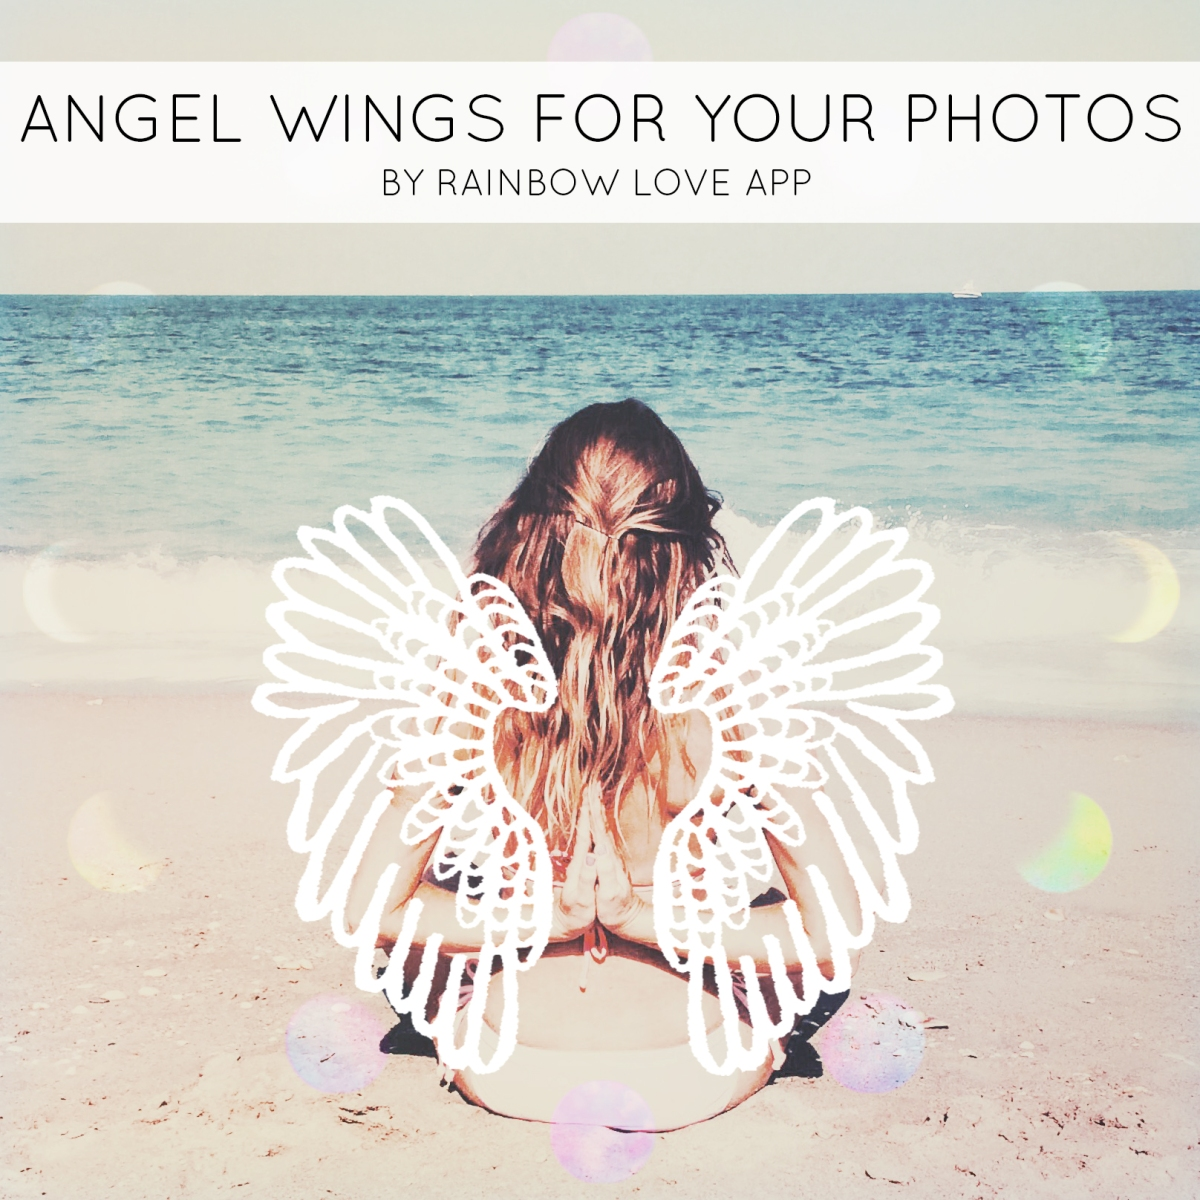 angel-wings-for-your-photos-angel-effect-photo-editor-rainbow-love-app-angels-wing-photo-editing-art-and-filters-best-rainbow-love-app-6